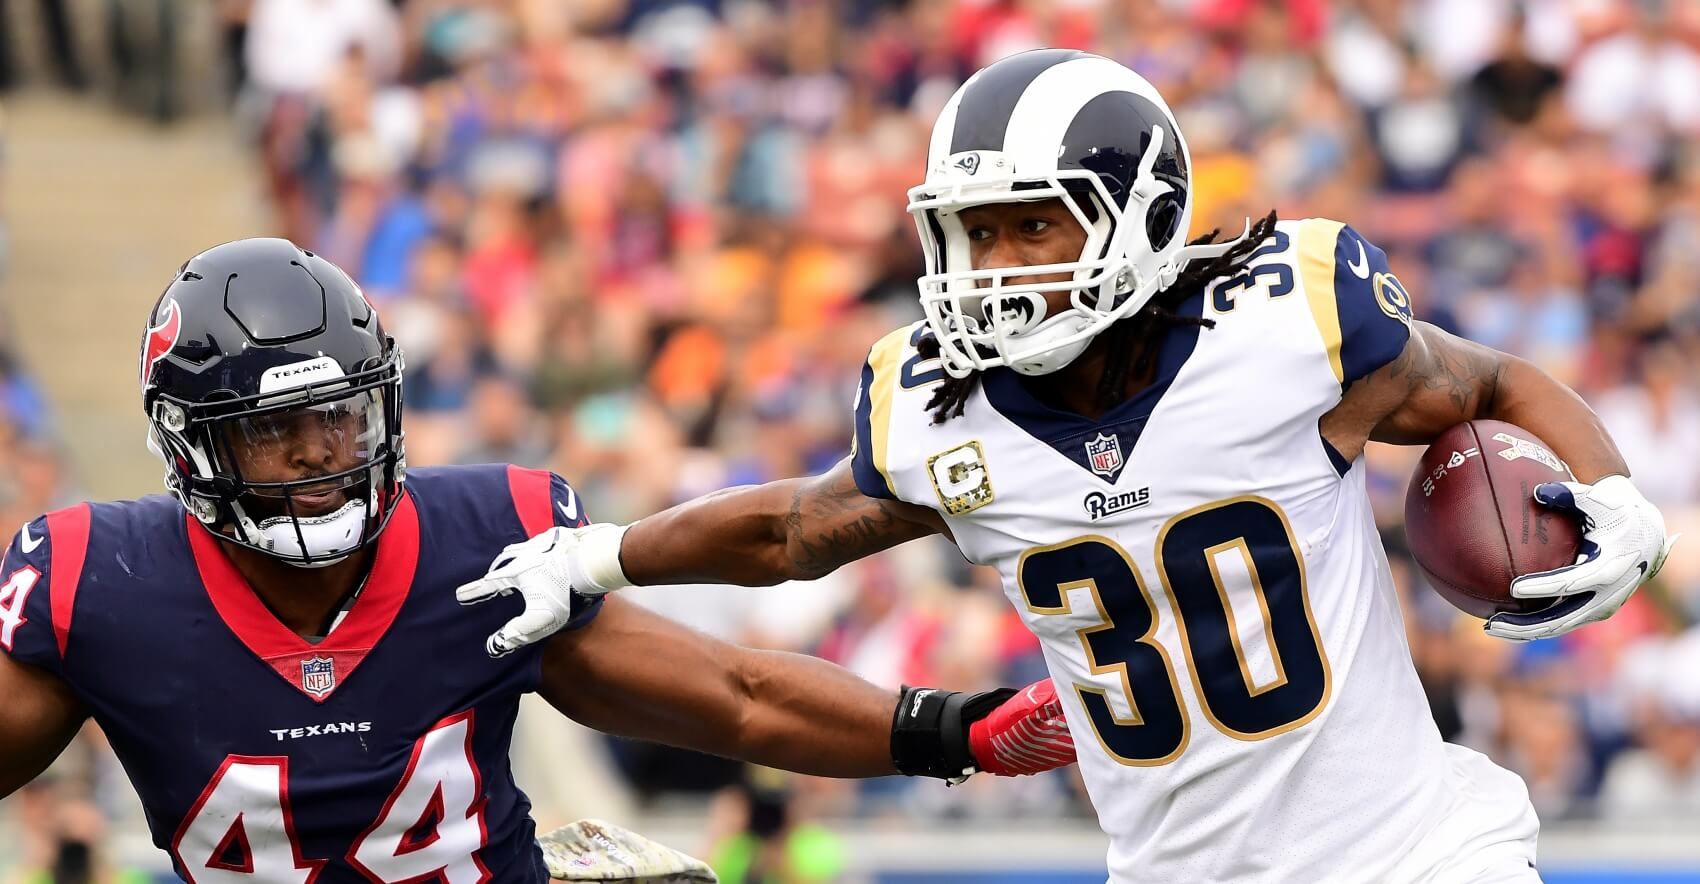 Fantasy Football: Can Todd Gurley Repeat His 2017 Dominance?